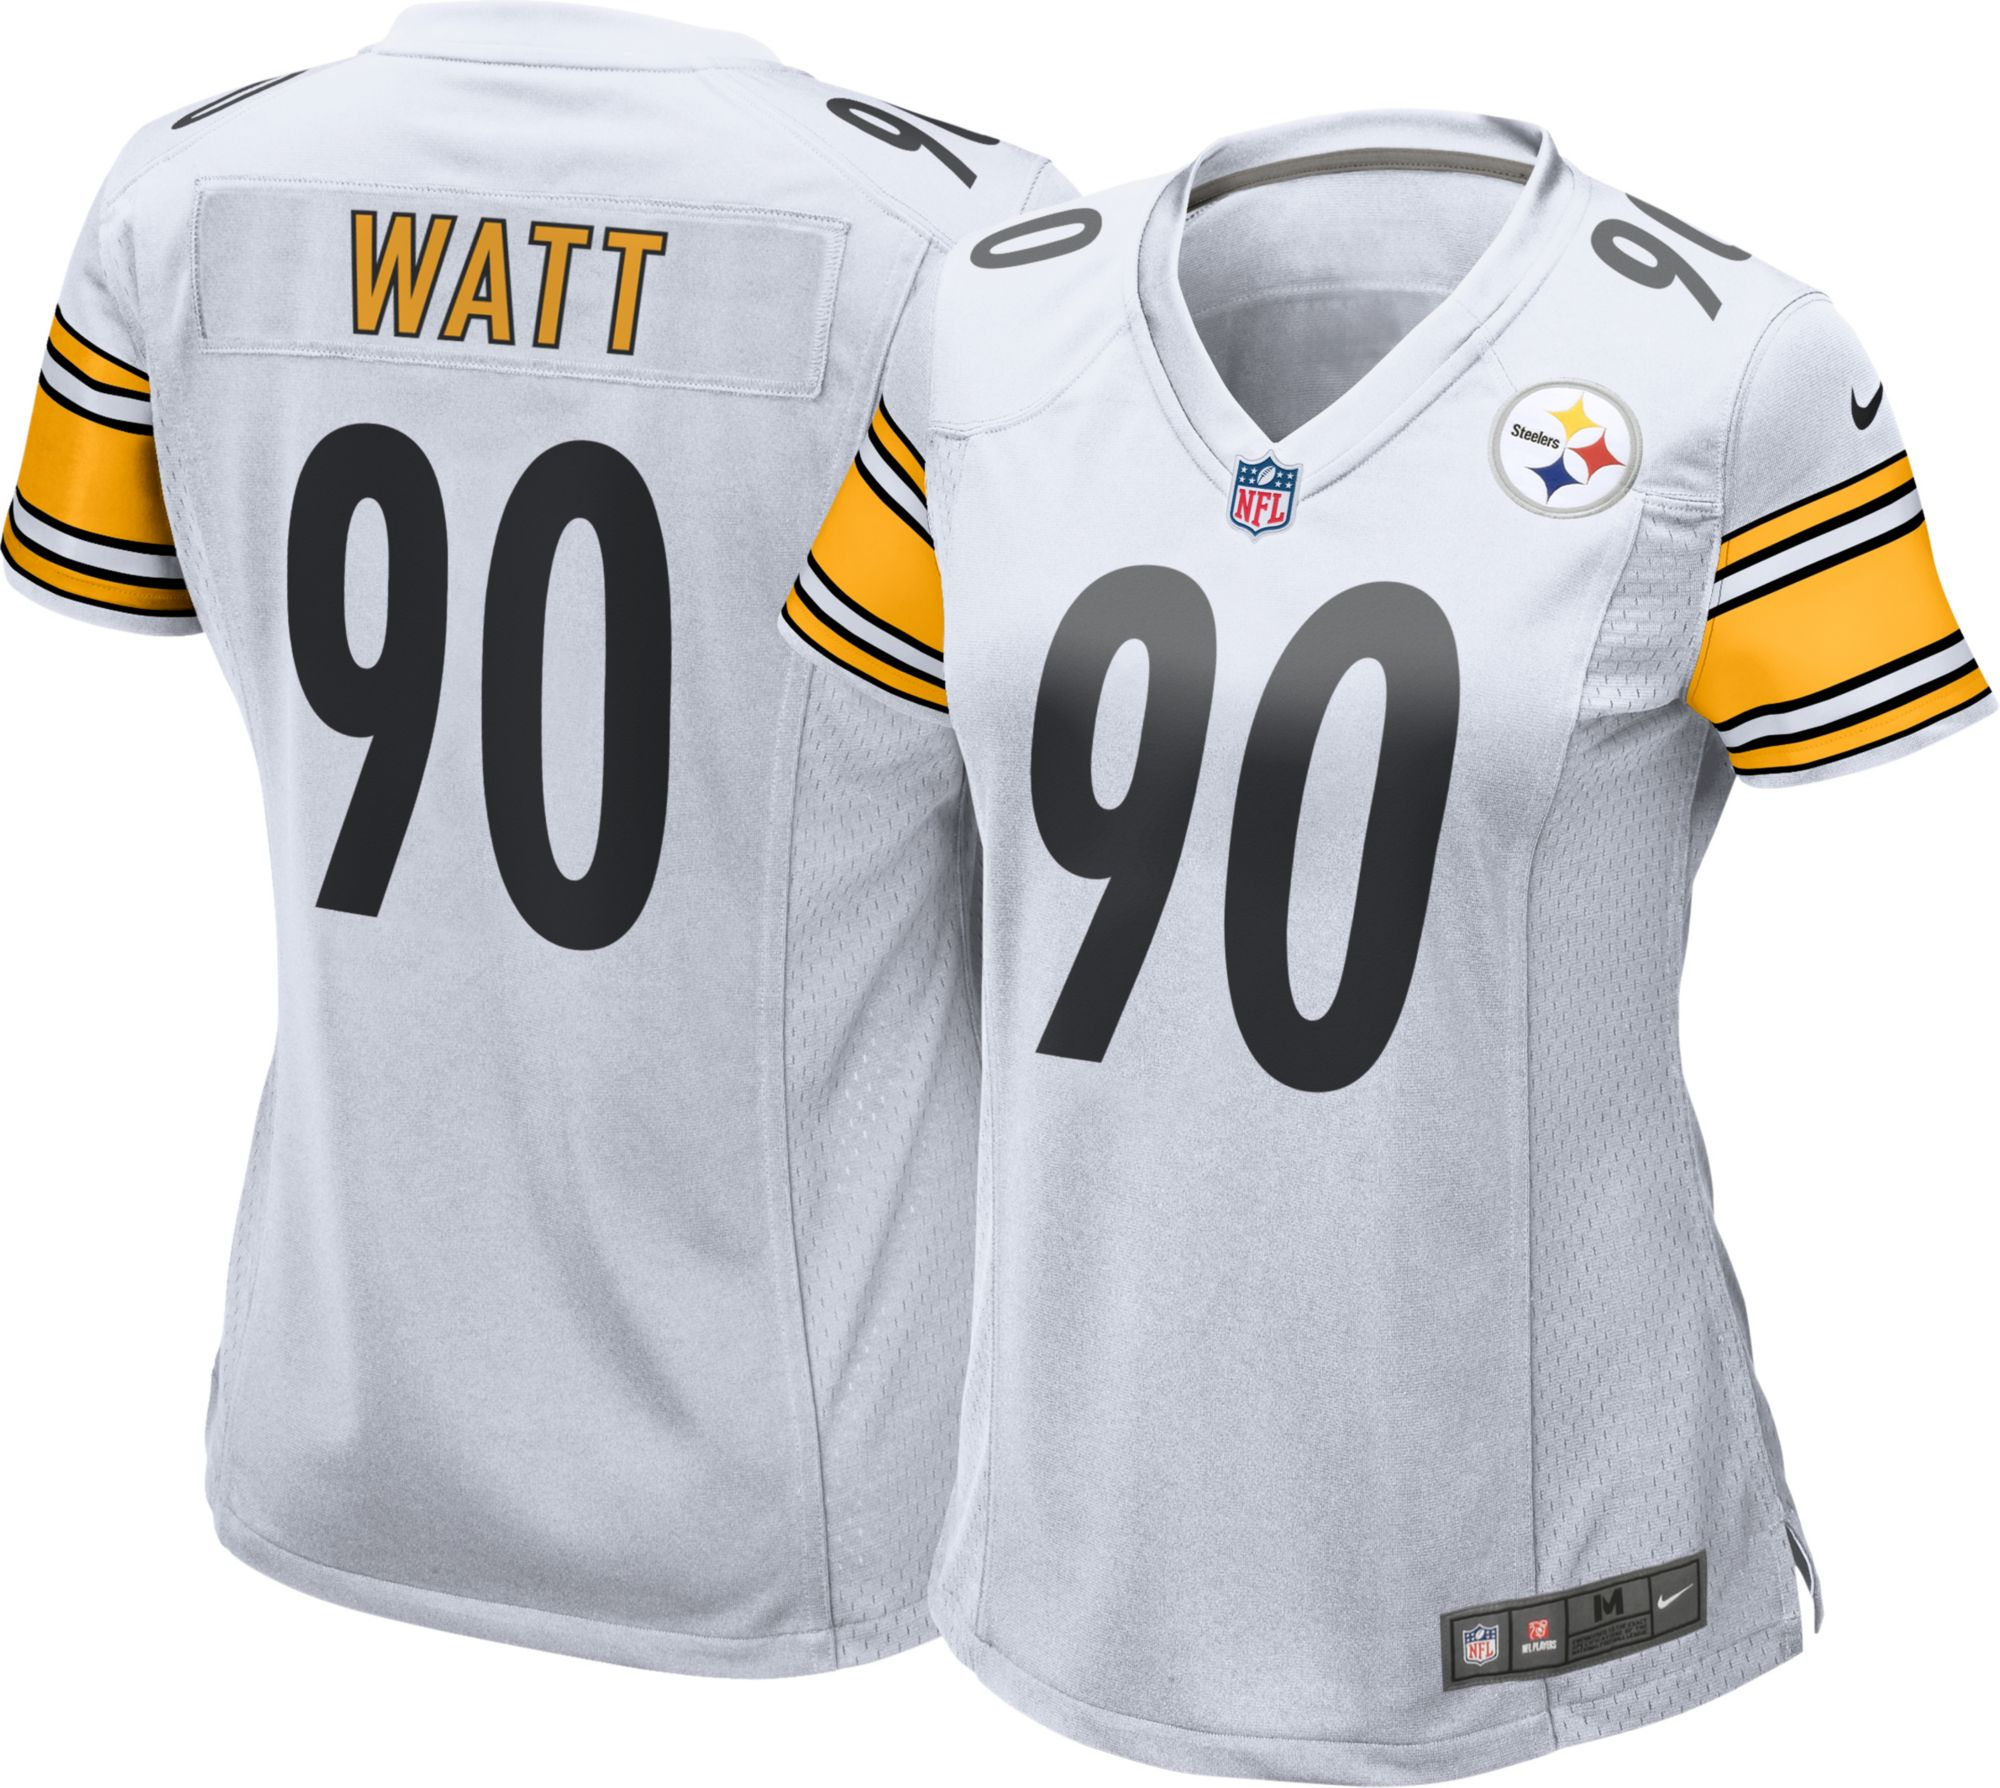 34200598 Nike Women's Away Game Jersey Pittsburgh Steelers T.J. Watt #90 ...